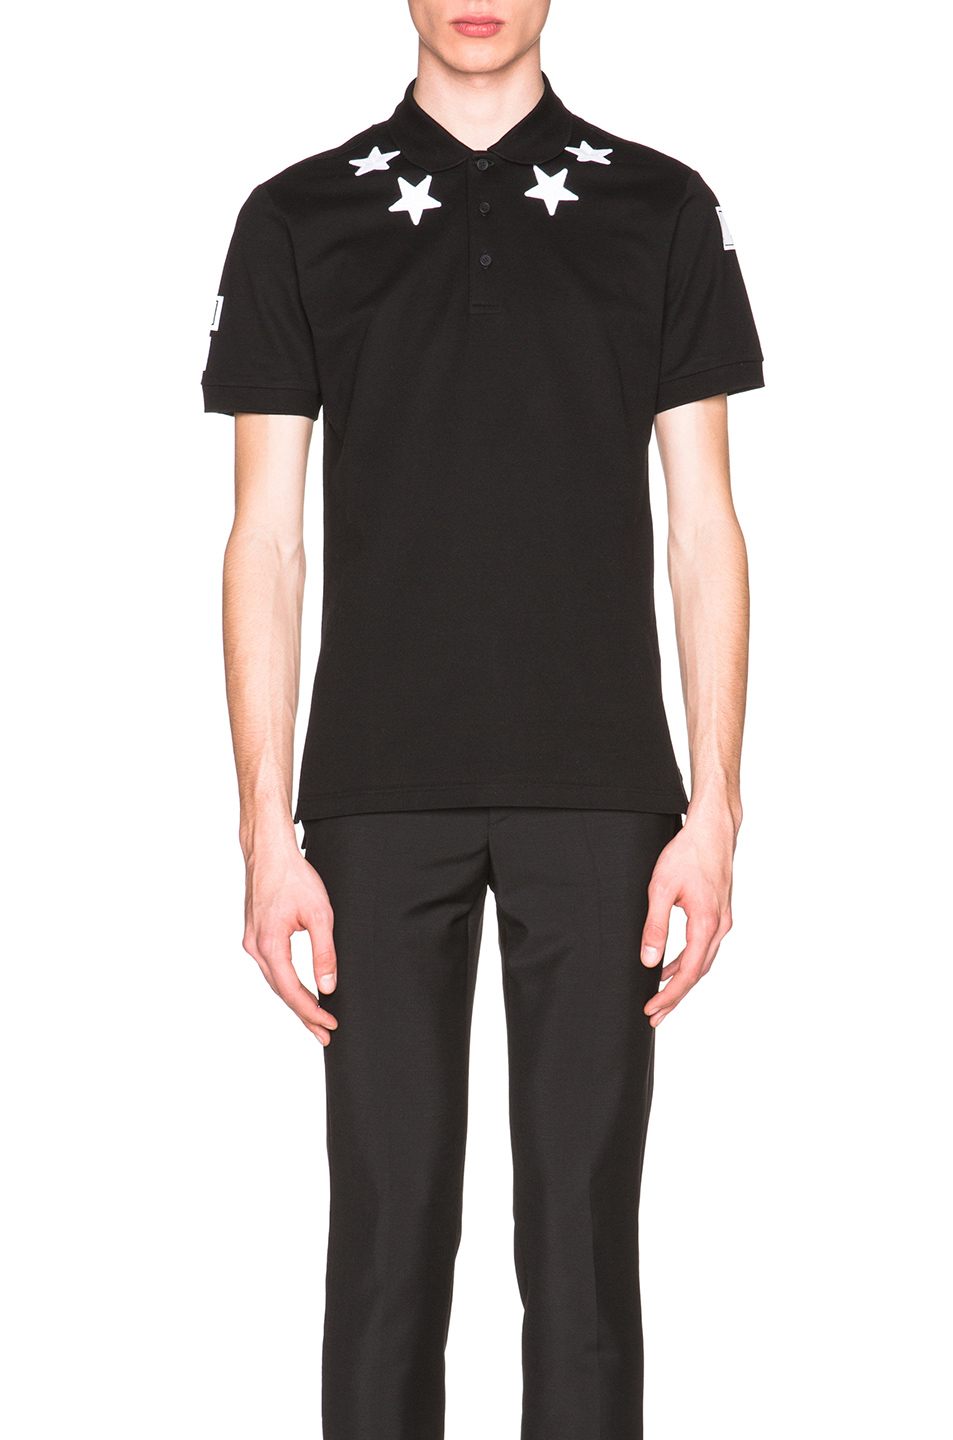 Givenchy Cuban Fit Star Collar 74 Polo in Black